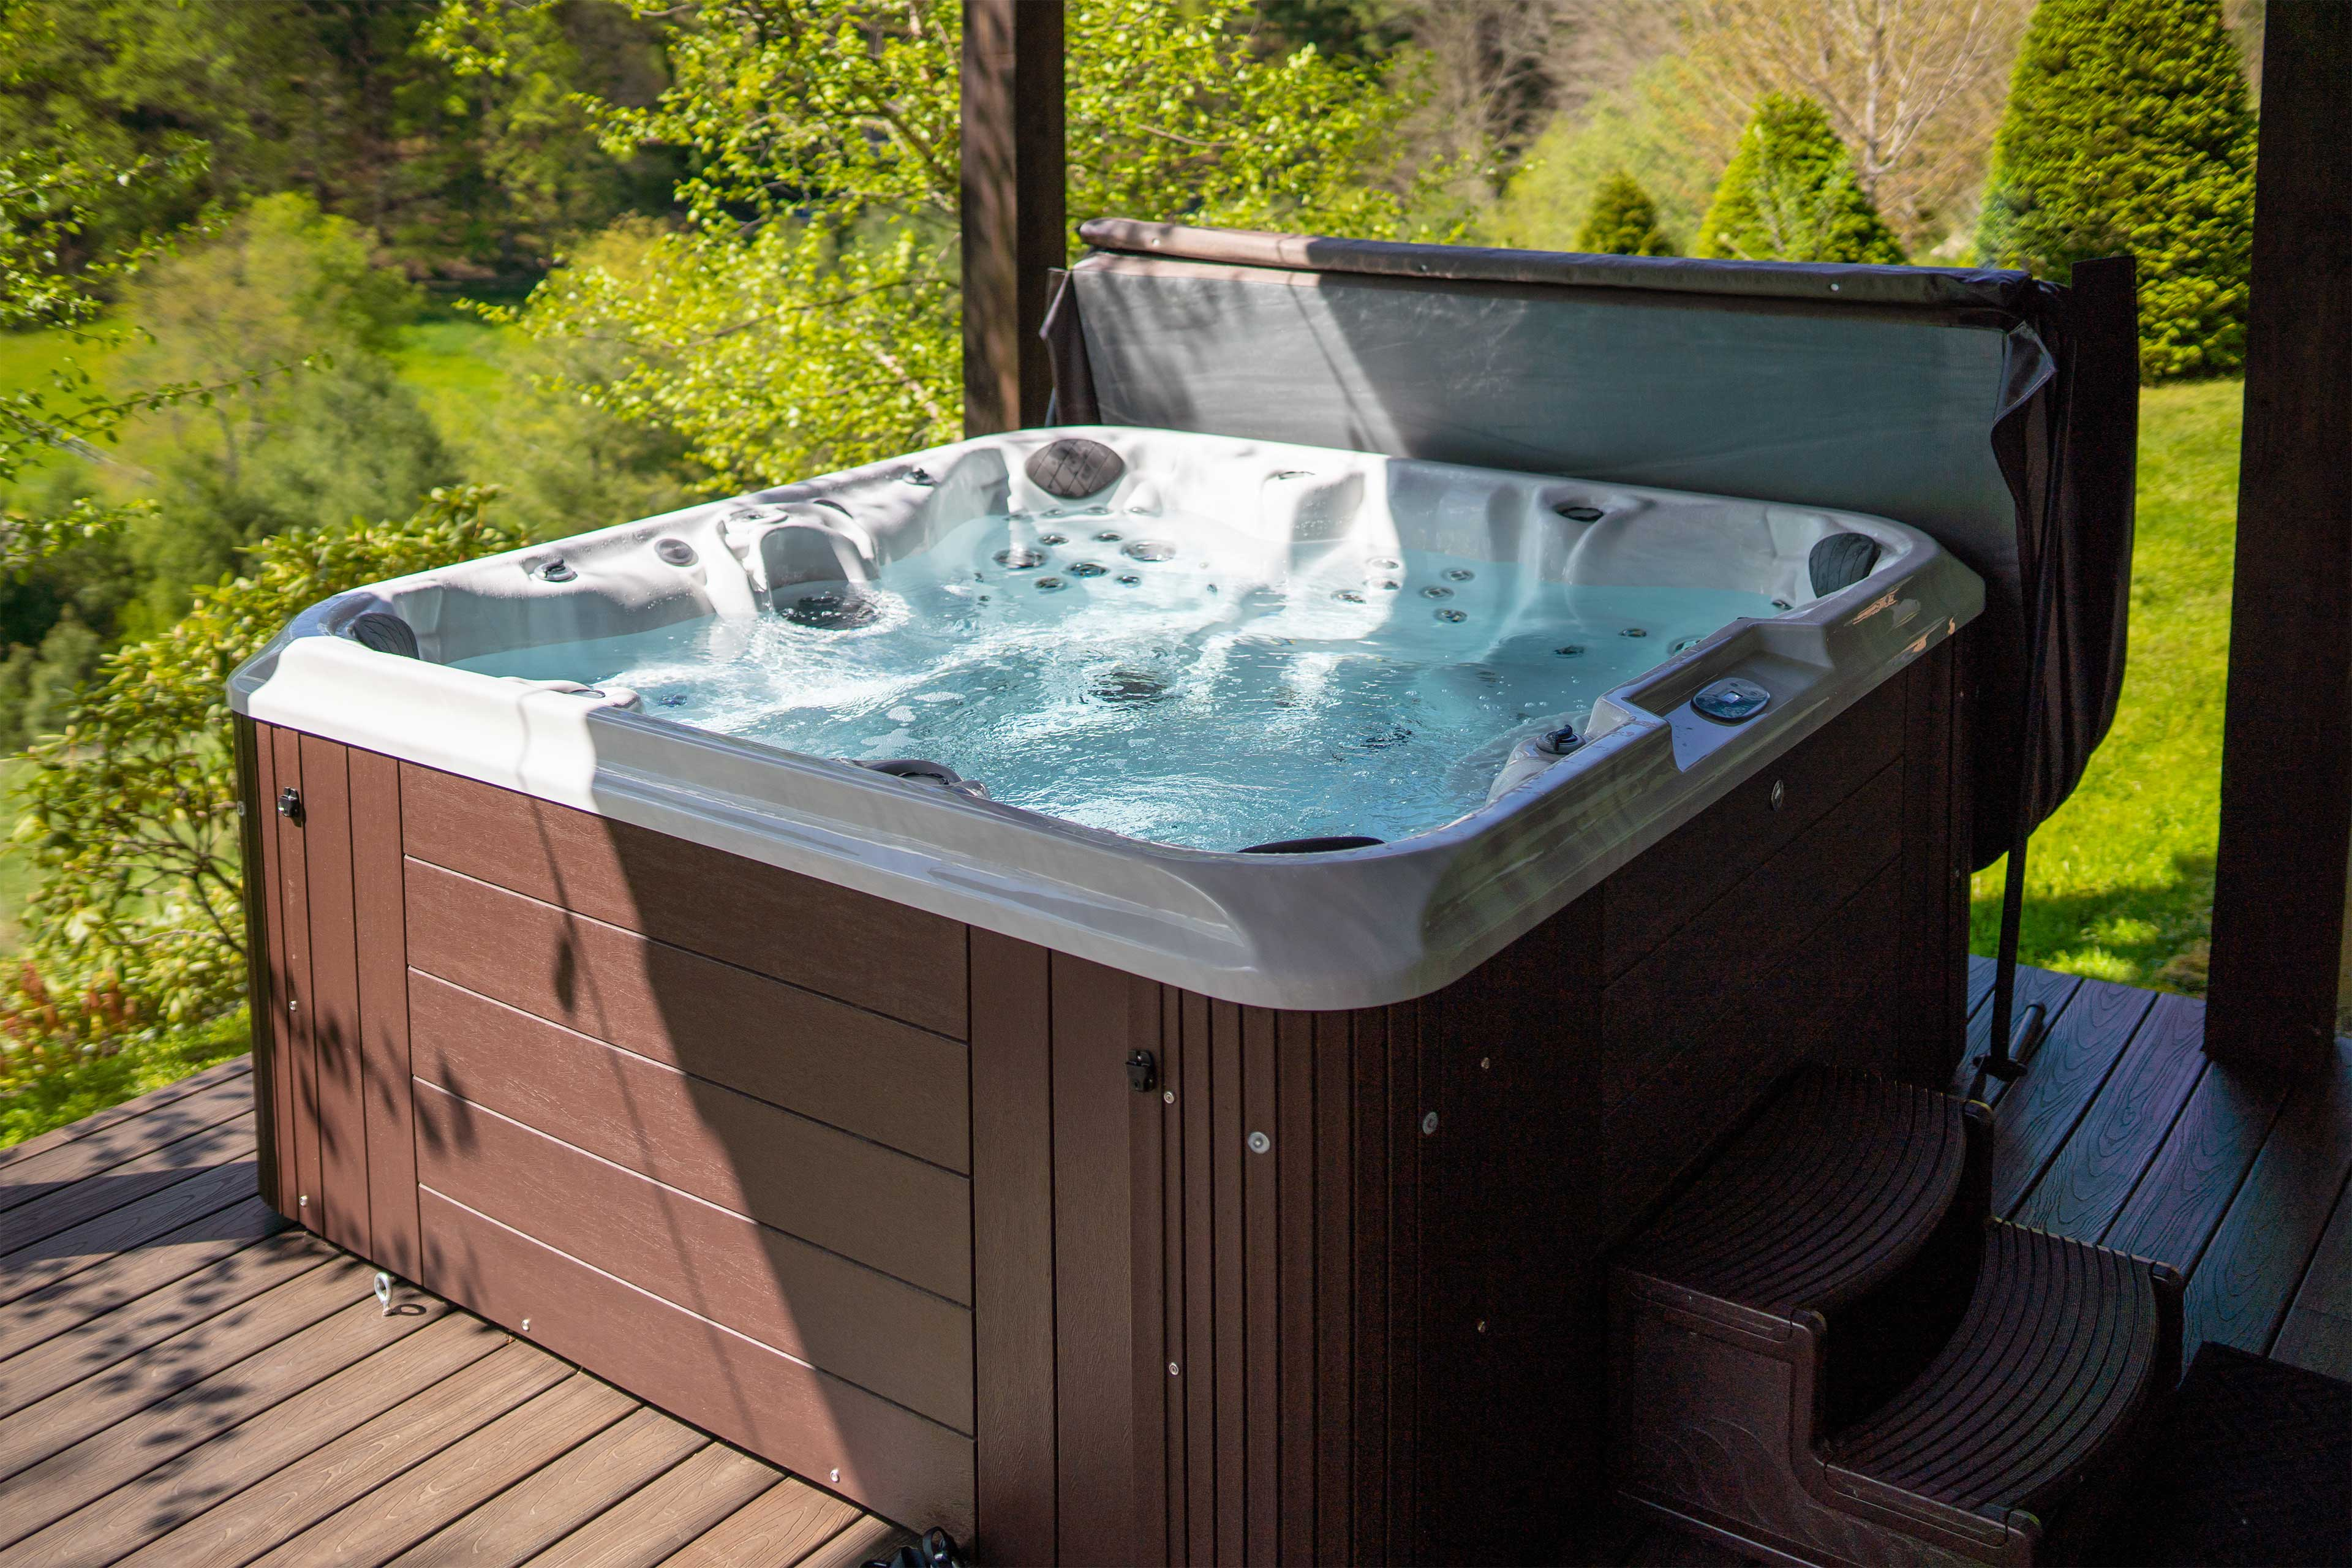 Watch was your worries melt away in the private hot tub.